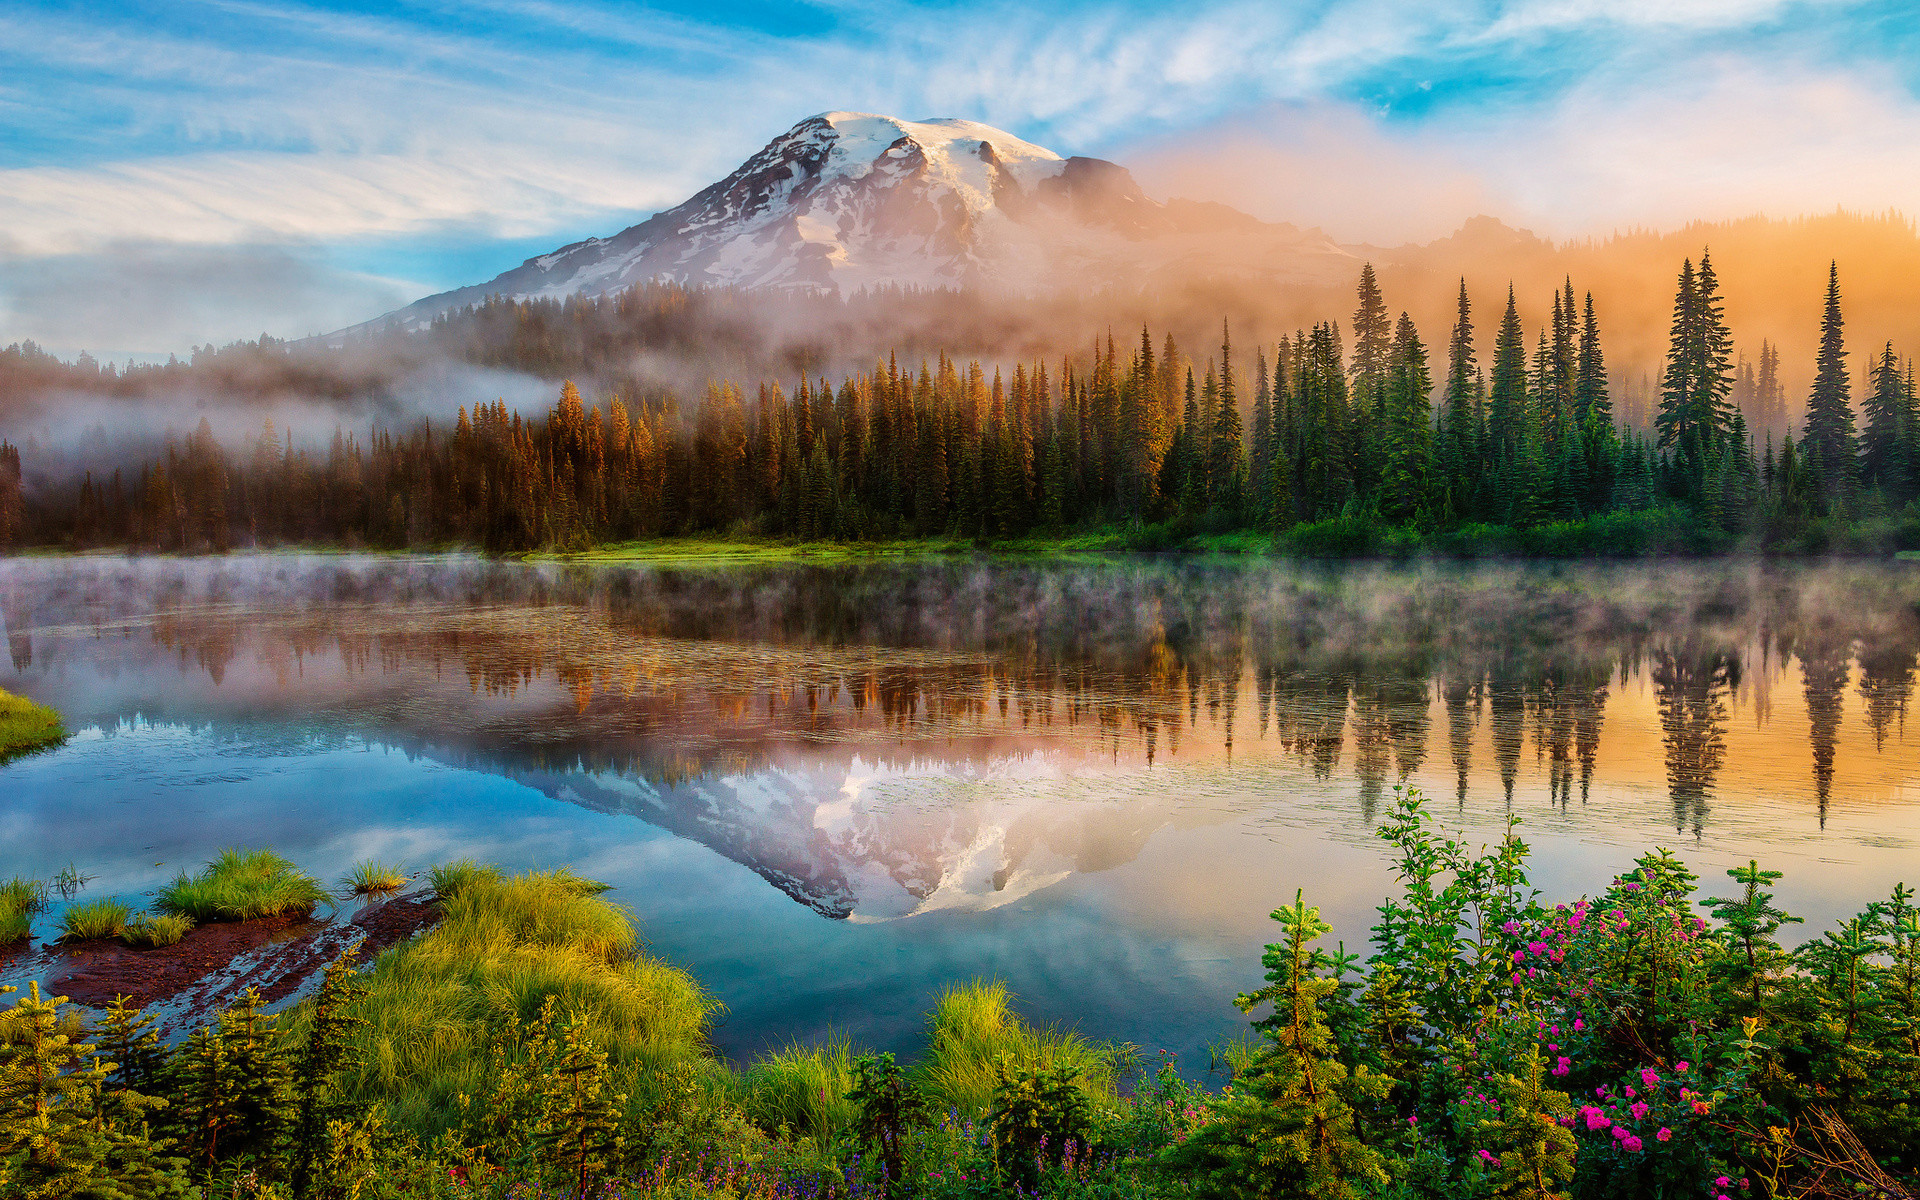 1920x1200 1080P HD Wallpapers Landscape | ... Wallpapers 2 IwHD.info 300x187  washington mountains